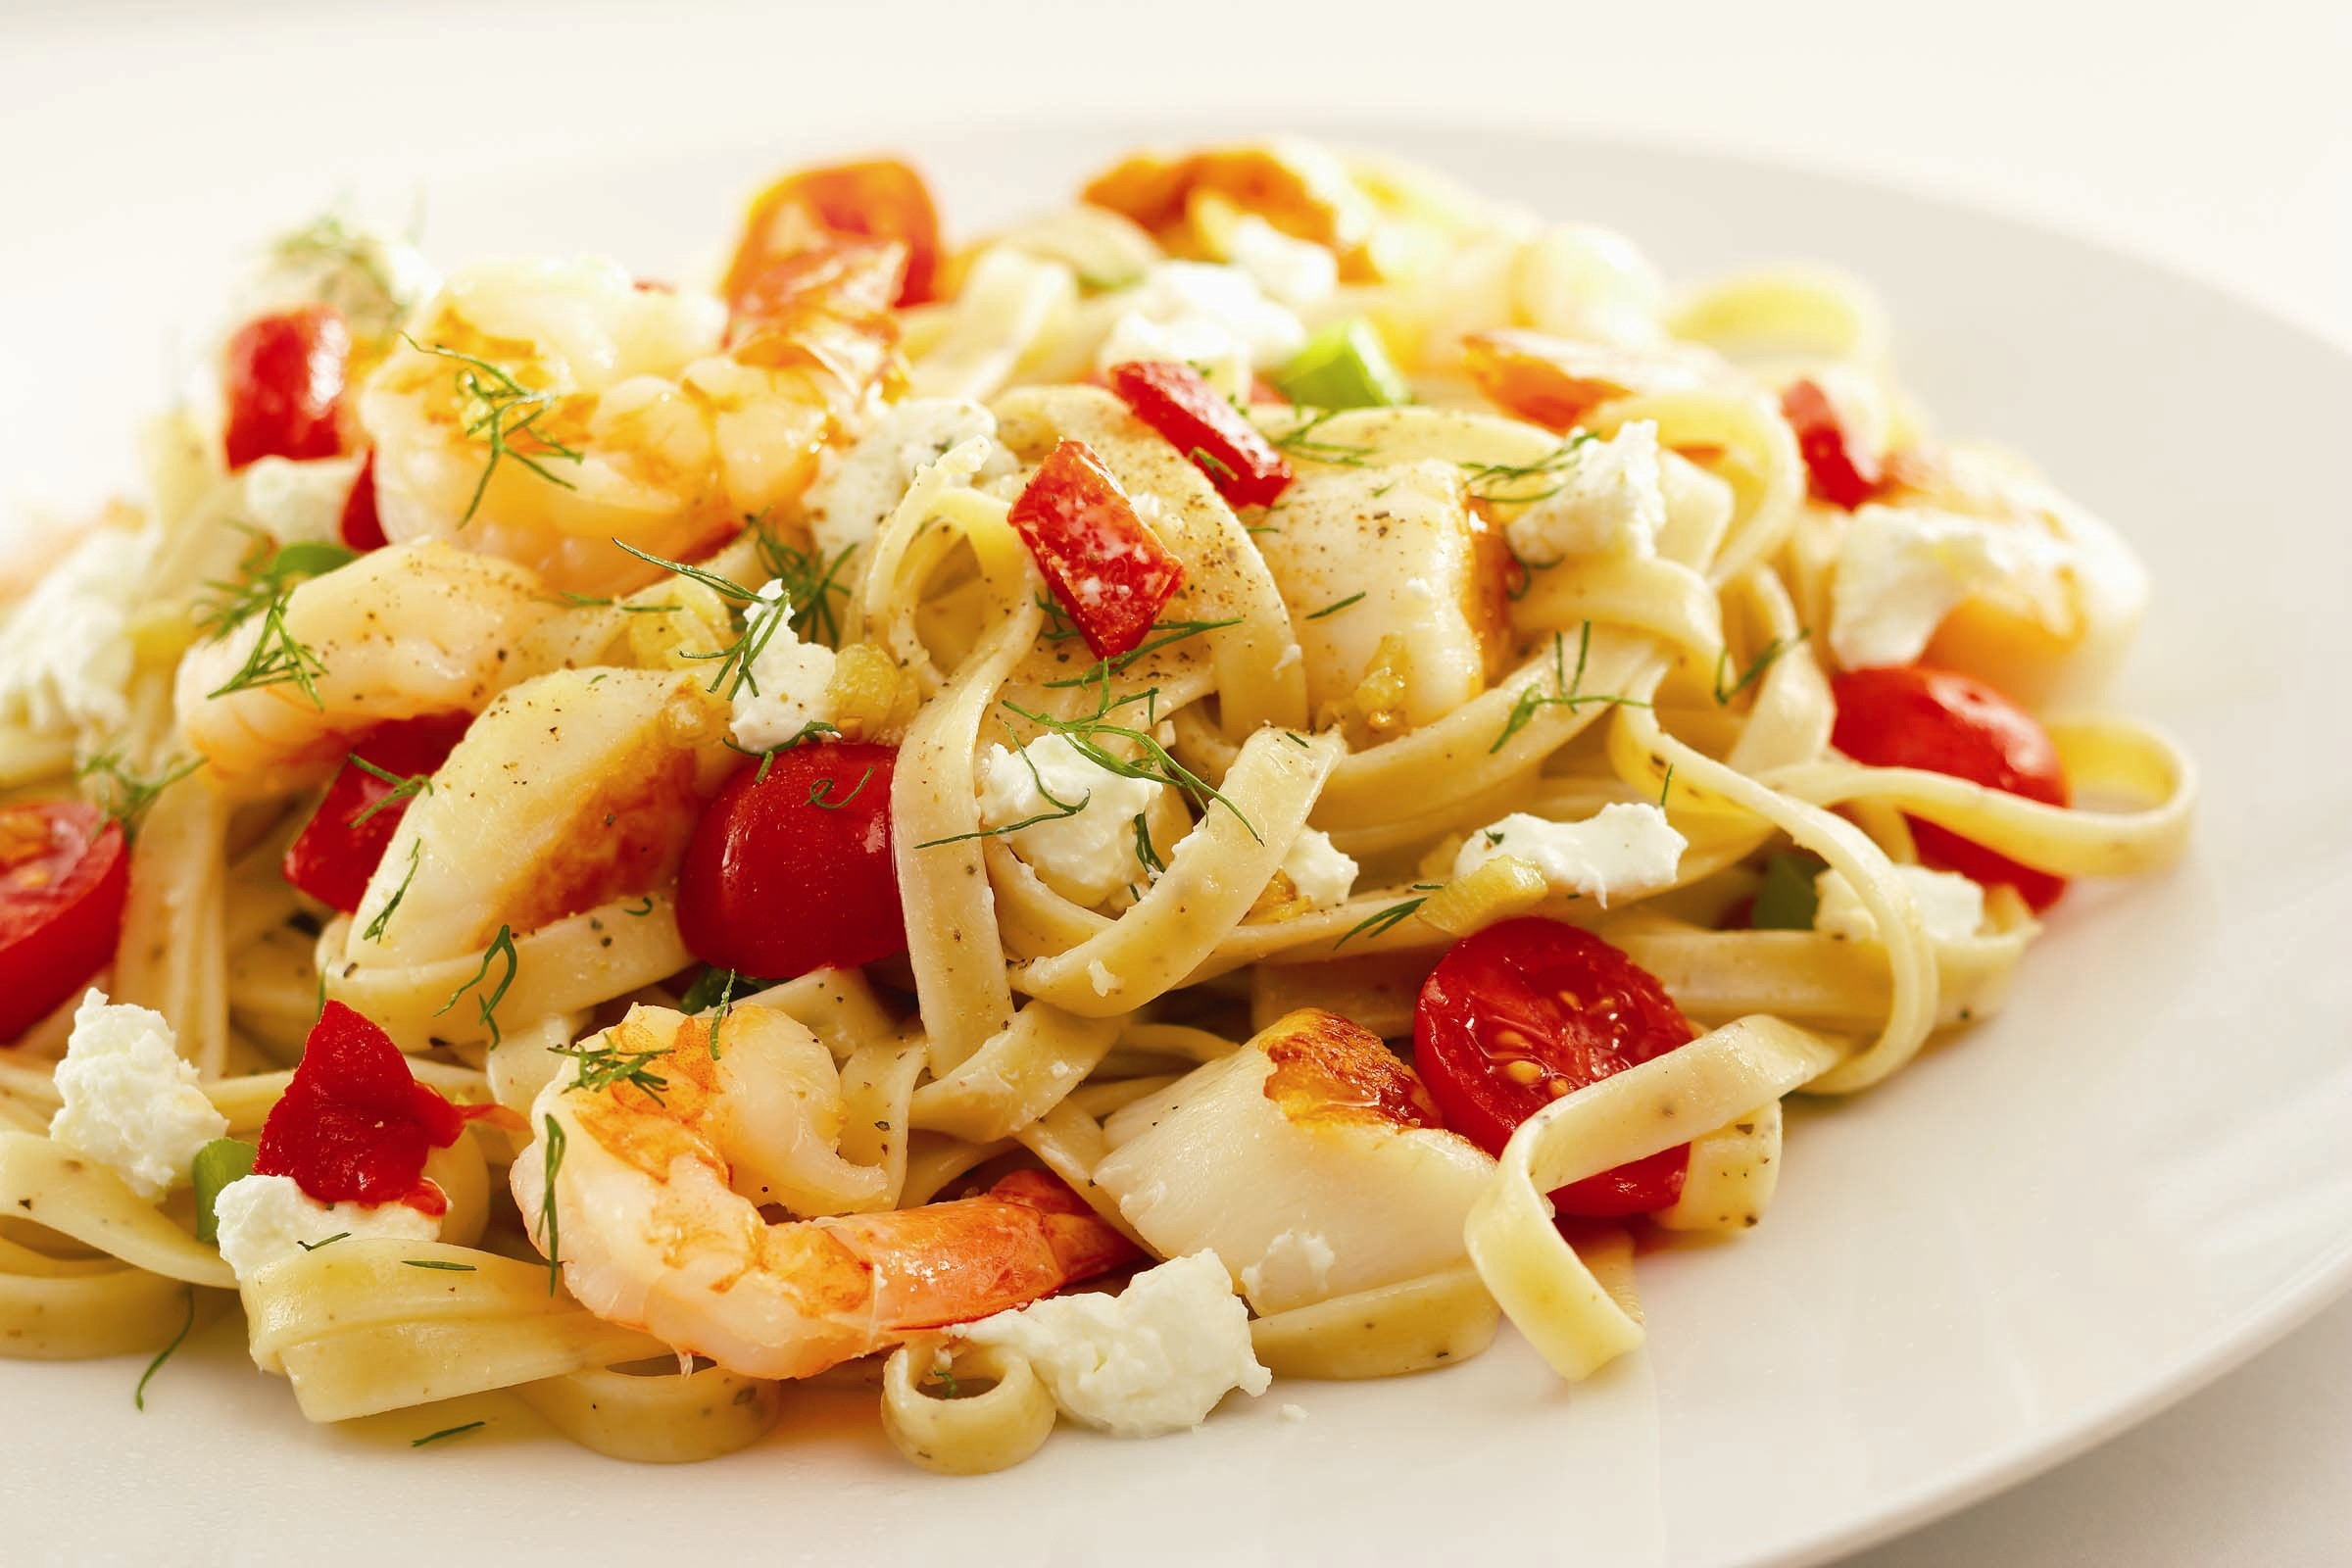 Seafood Pasta Primavera with Goat Cheese picture